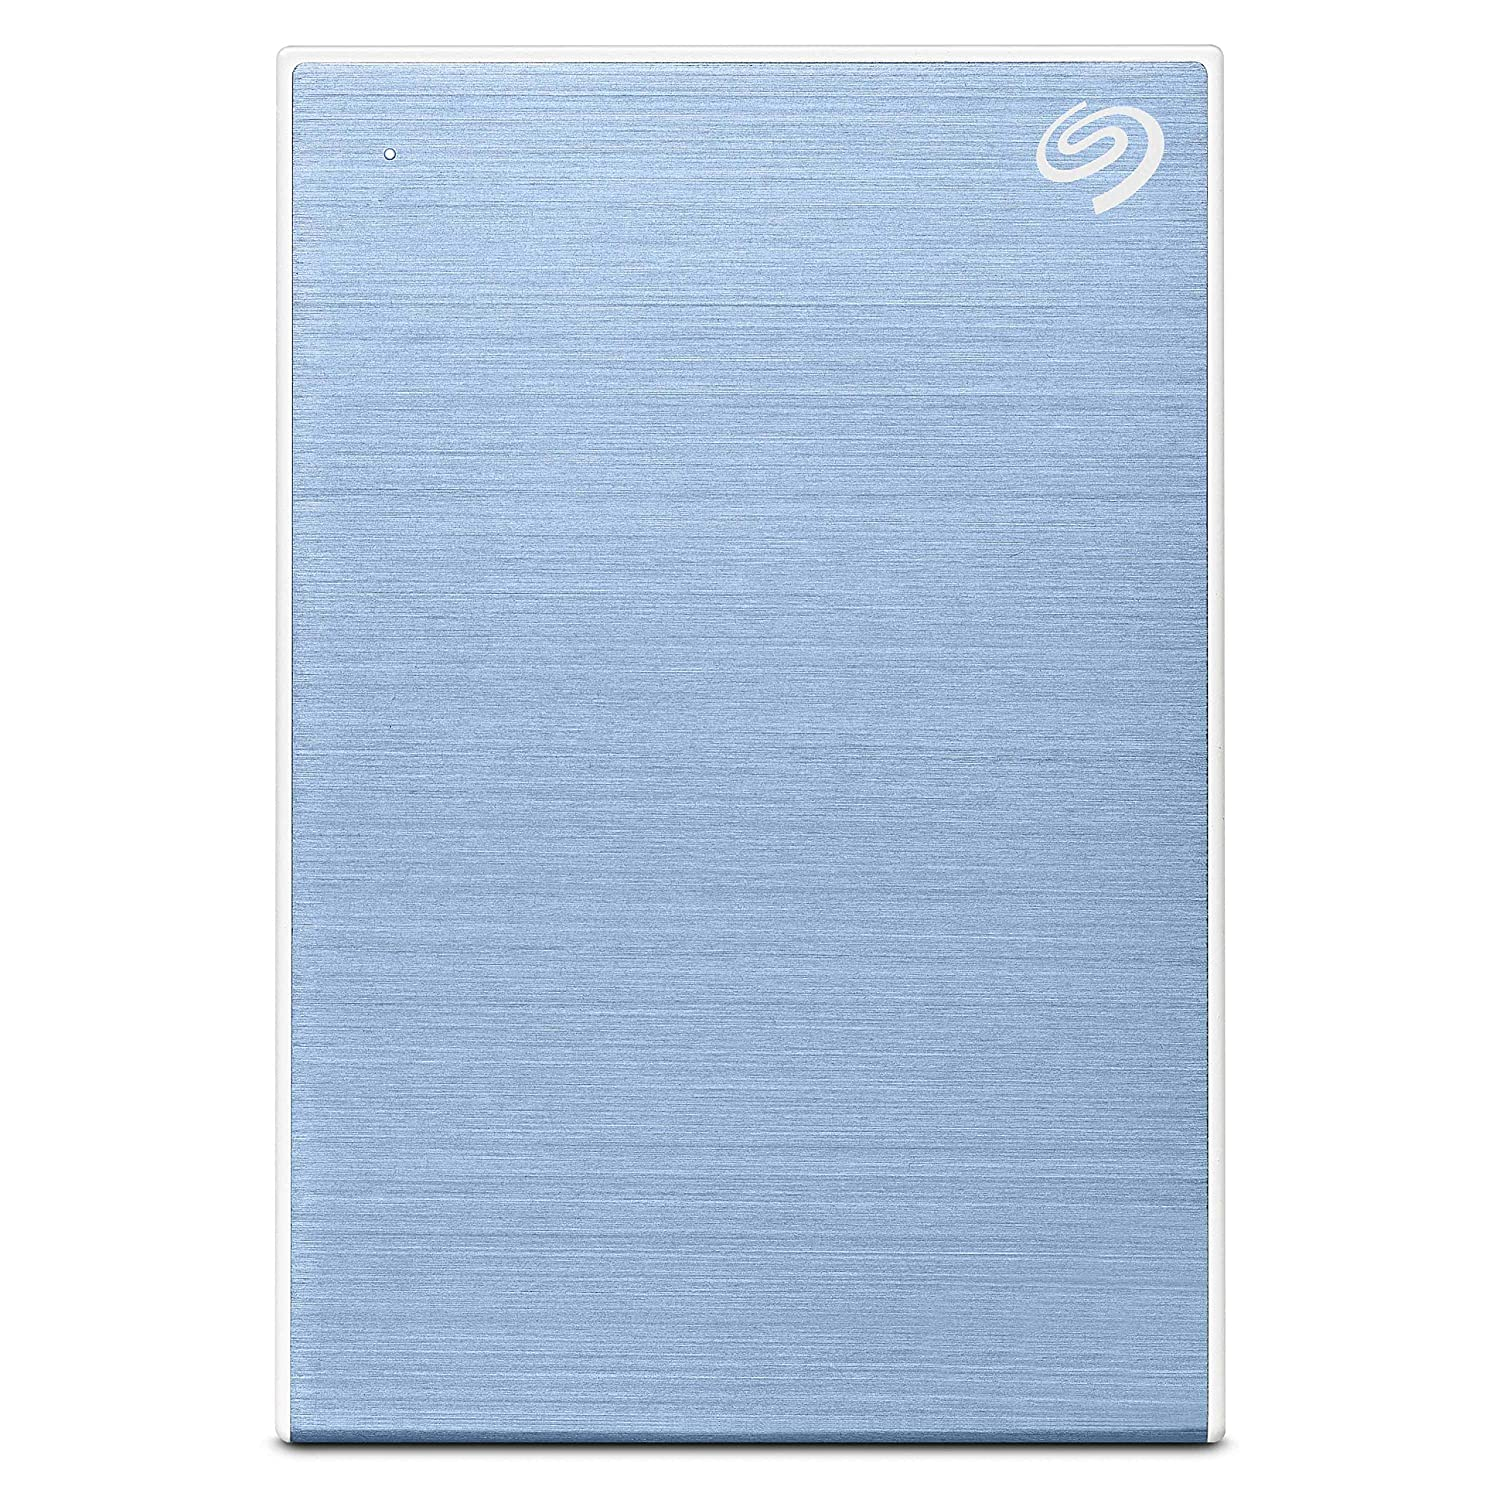 Seagate Backup Plus Slim 1????TB External Hard Drive Portable HDD ??????? Light Blue USB 3.0 for PC Laptop and Mac, 1 Year Mylio Create, 2 Months Adobe CC Photography (STHN1000402)